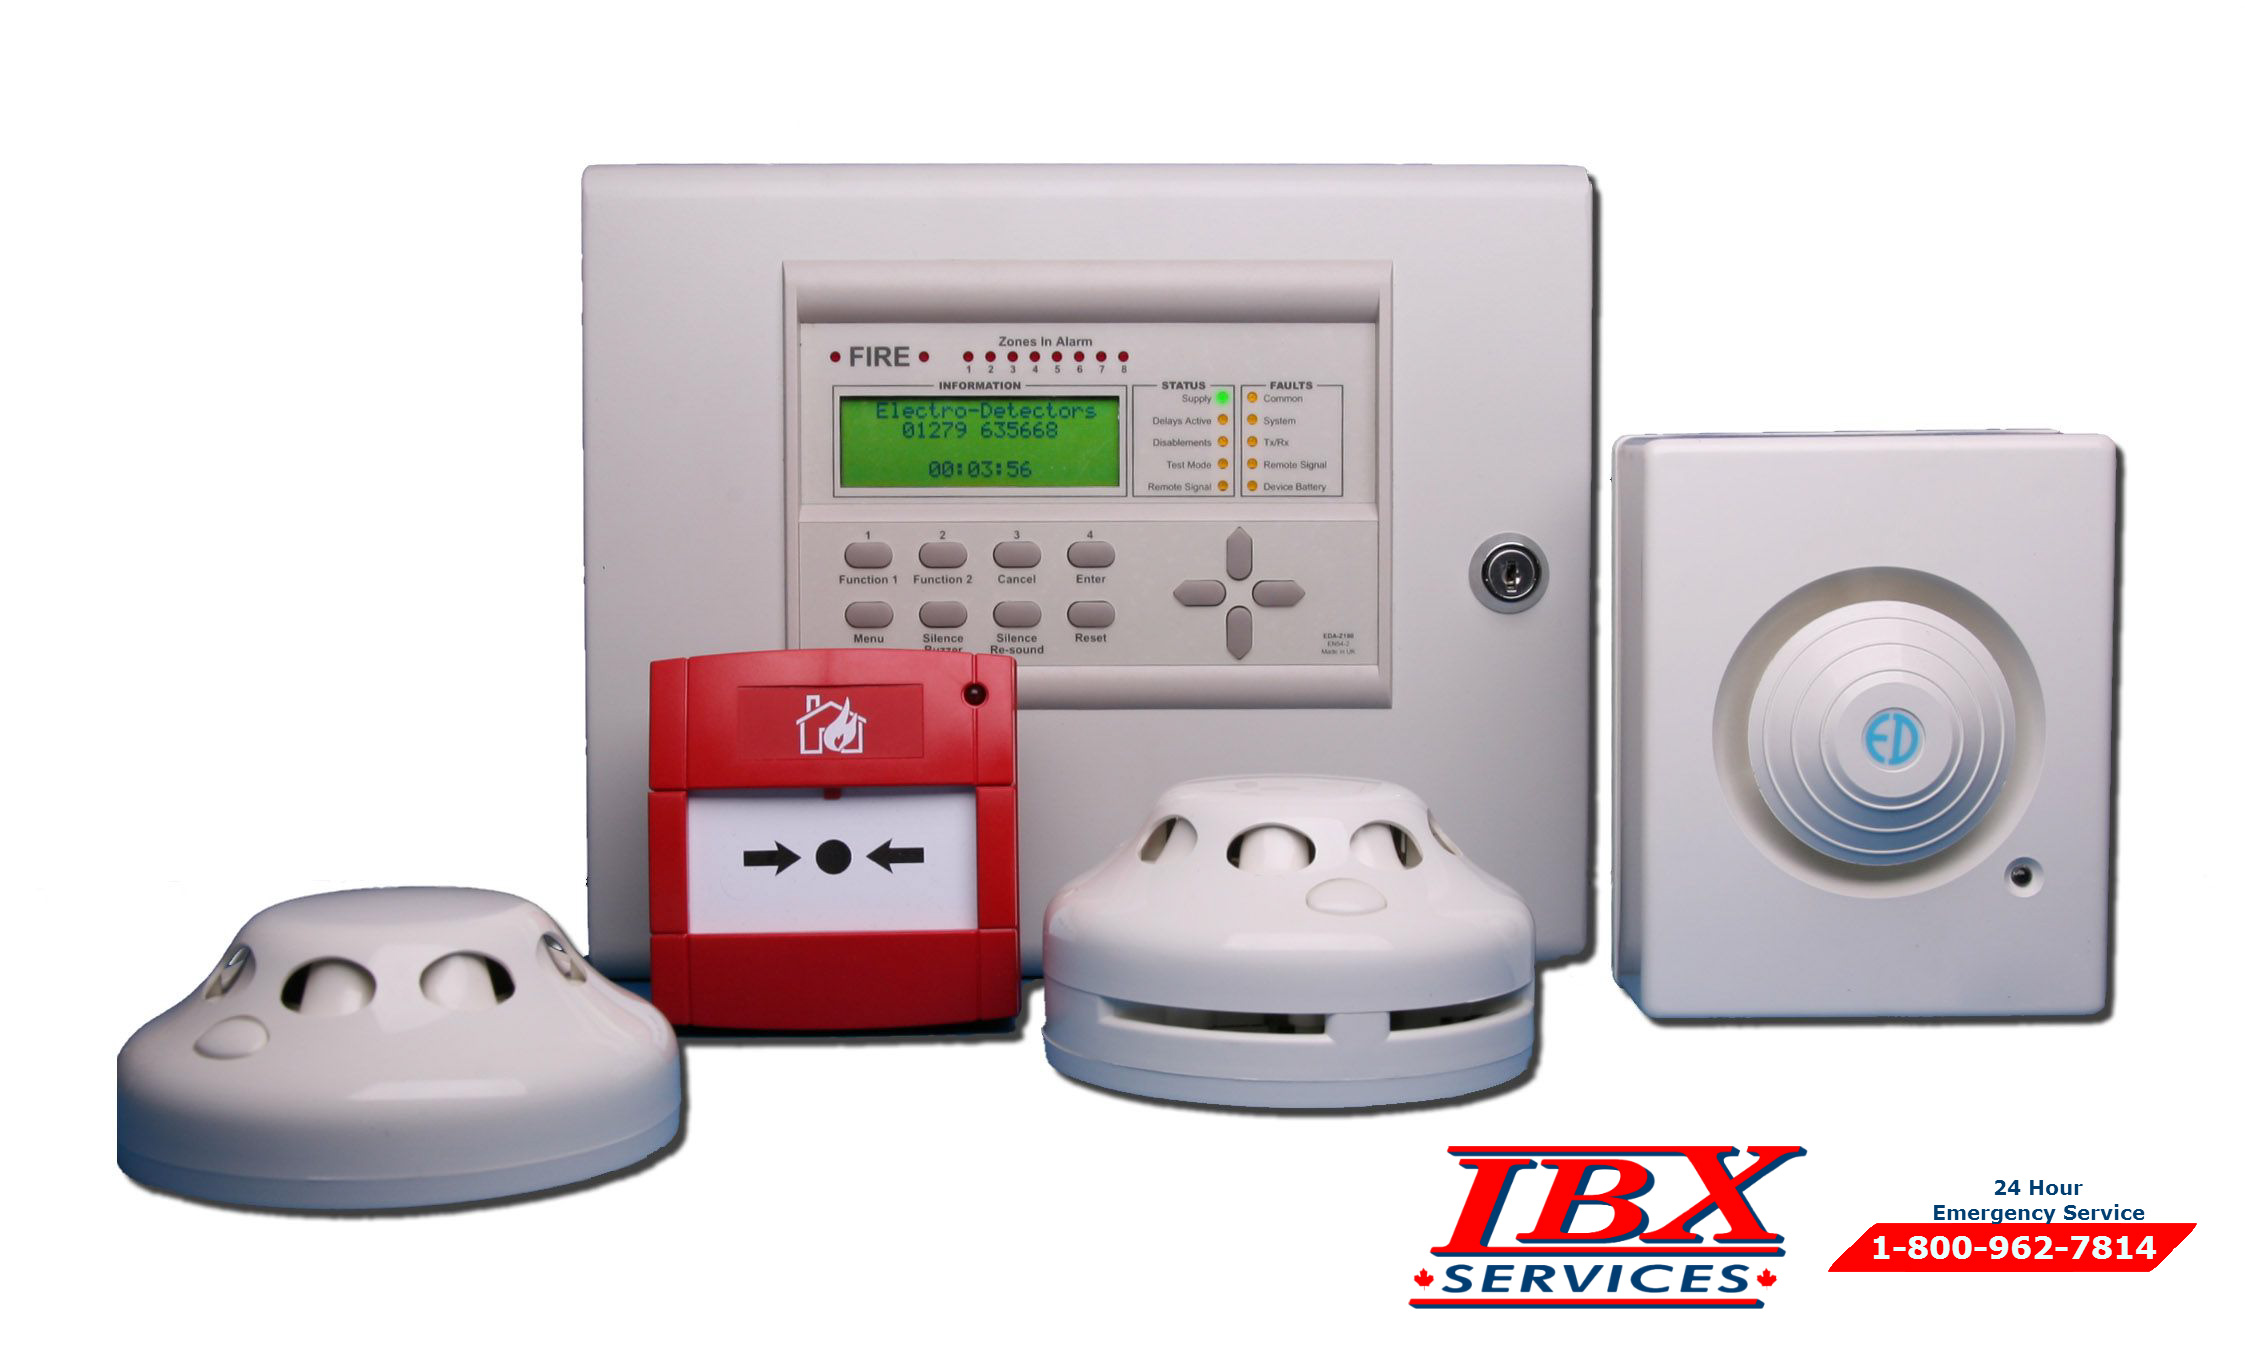 Fire Detection Systems – IBX Services Team